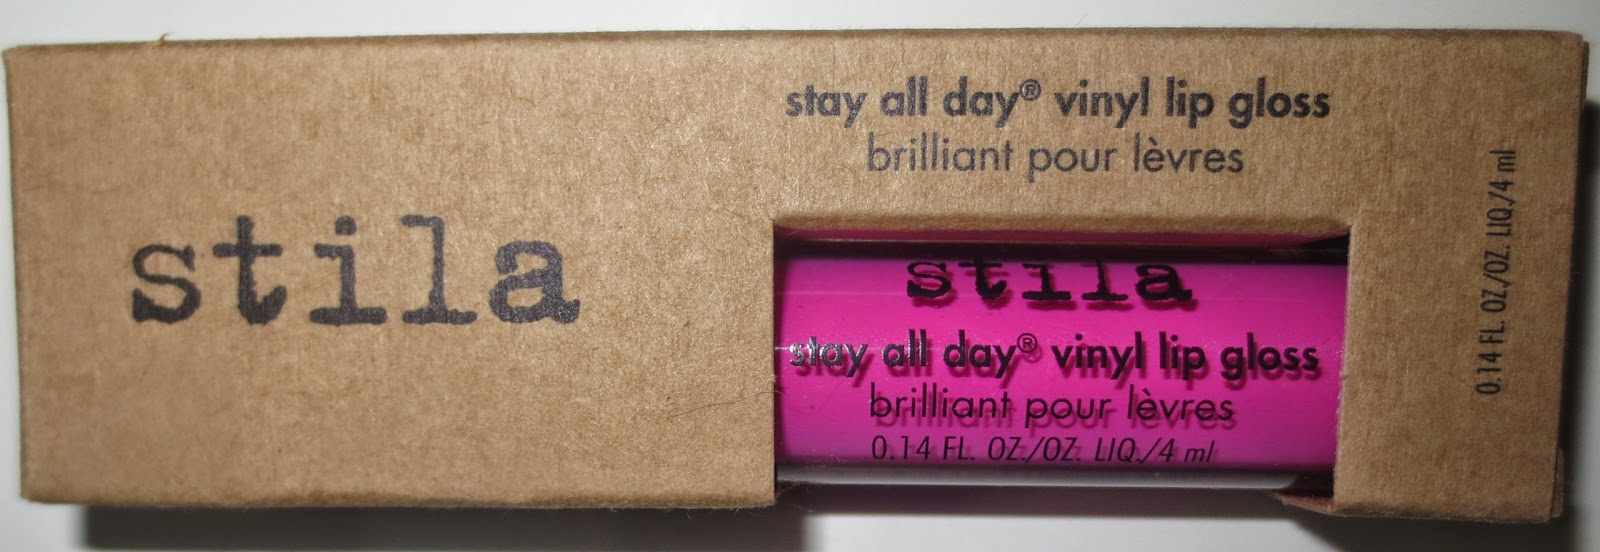 Stila Stay All Day Vinyl Lip Gloss Hot Pink Vinyl Packaging